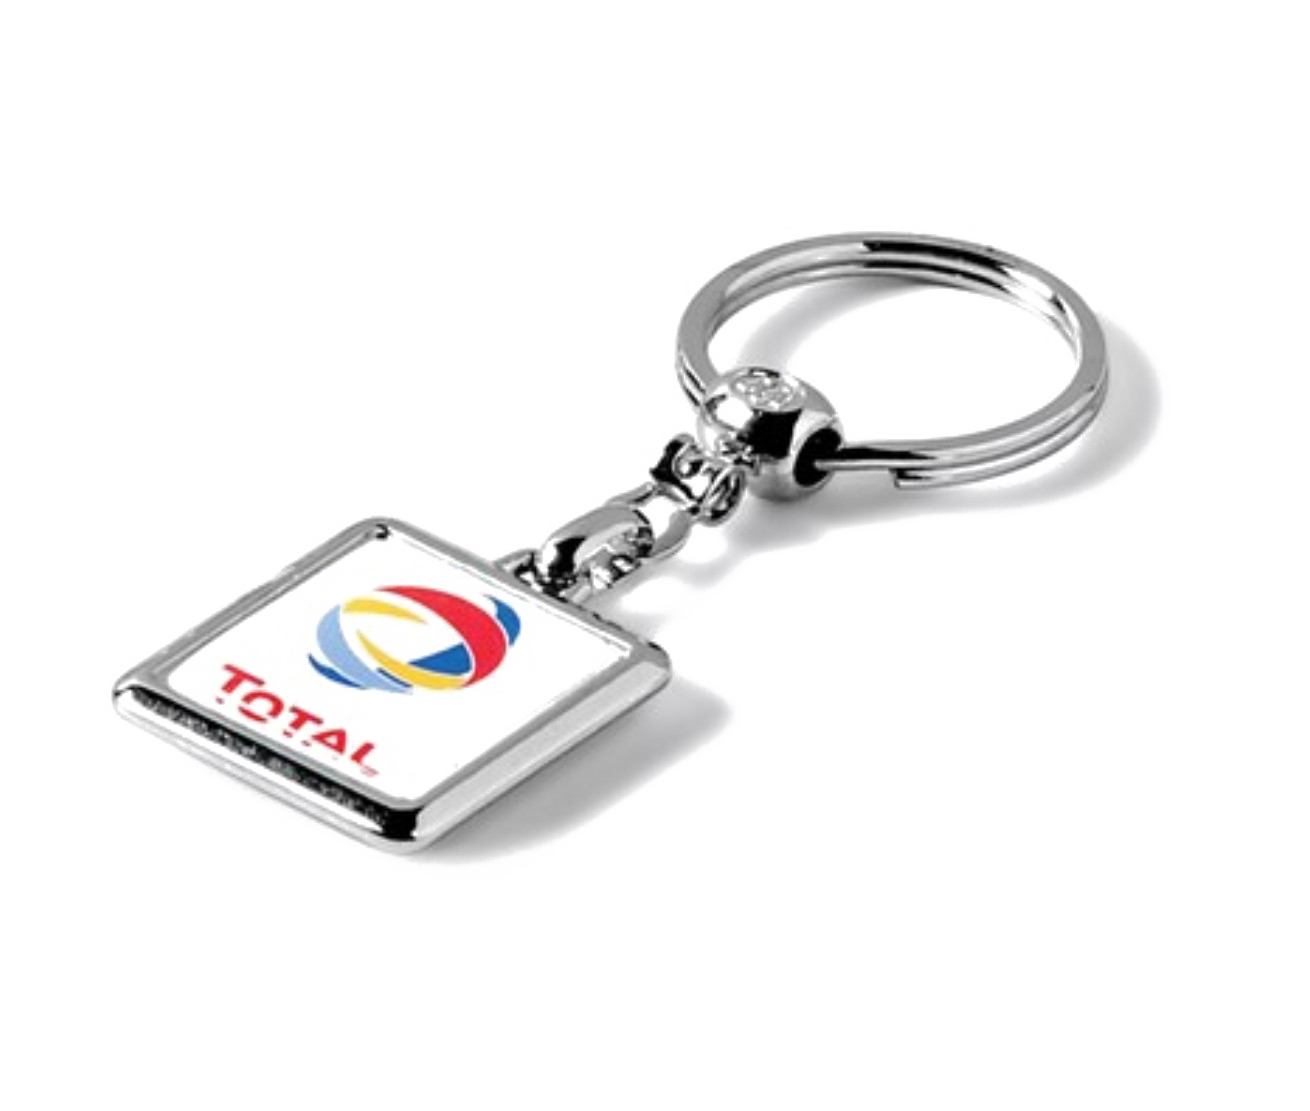 Key Holder Download PNG Image SVG Clip arts